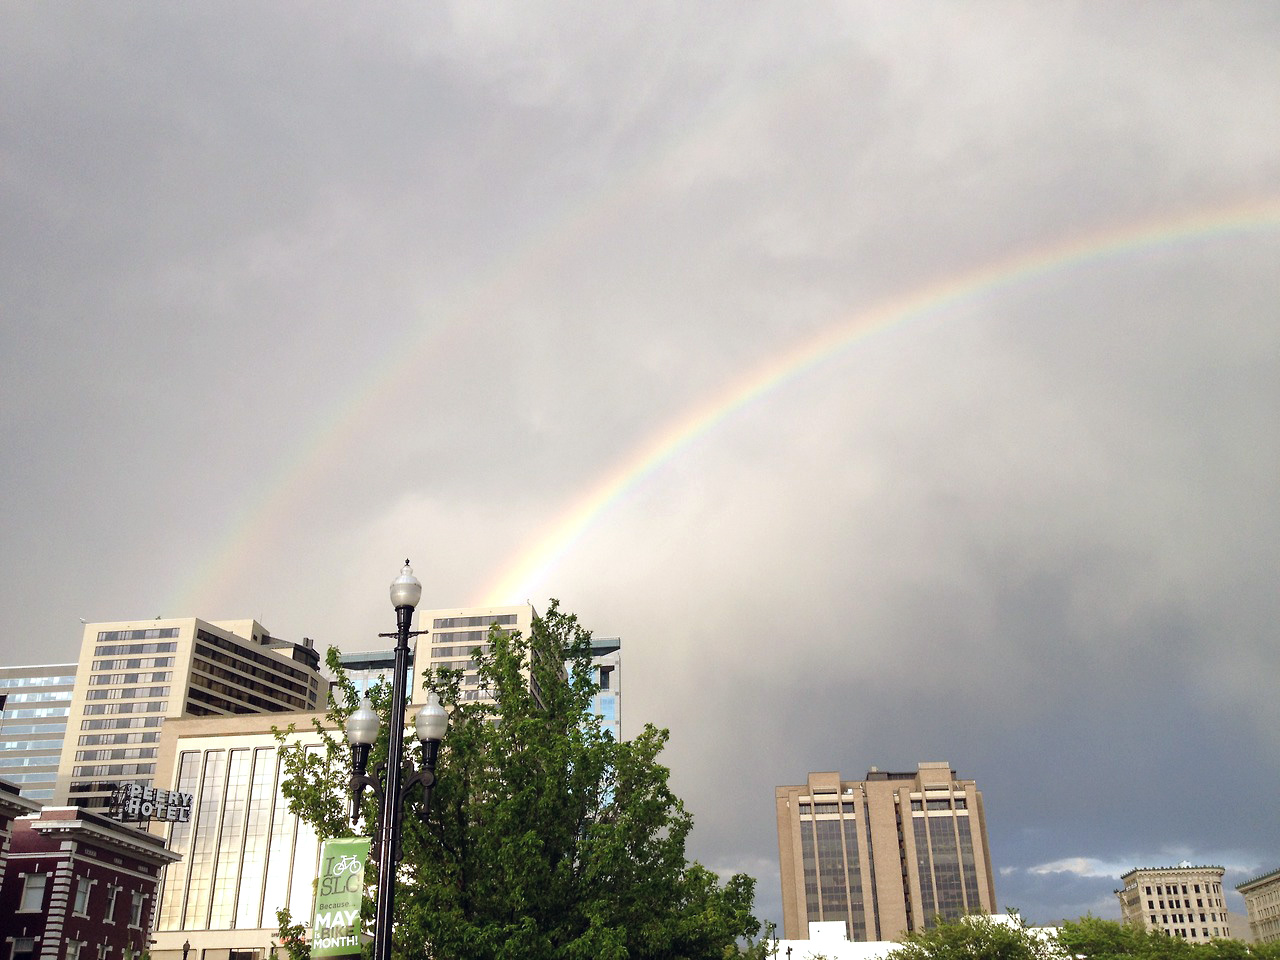 Spotted during  Venafi  site visit in SLC: Twin towers, double rainbow.